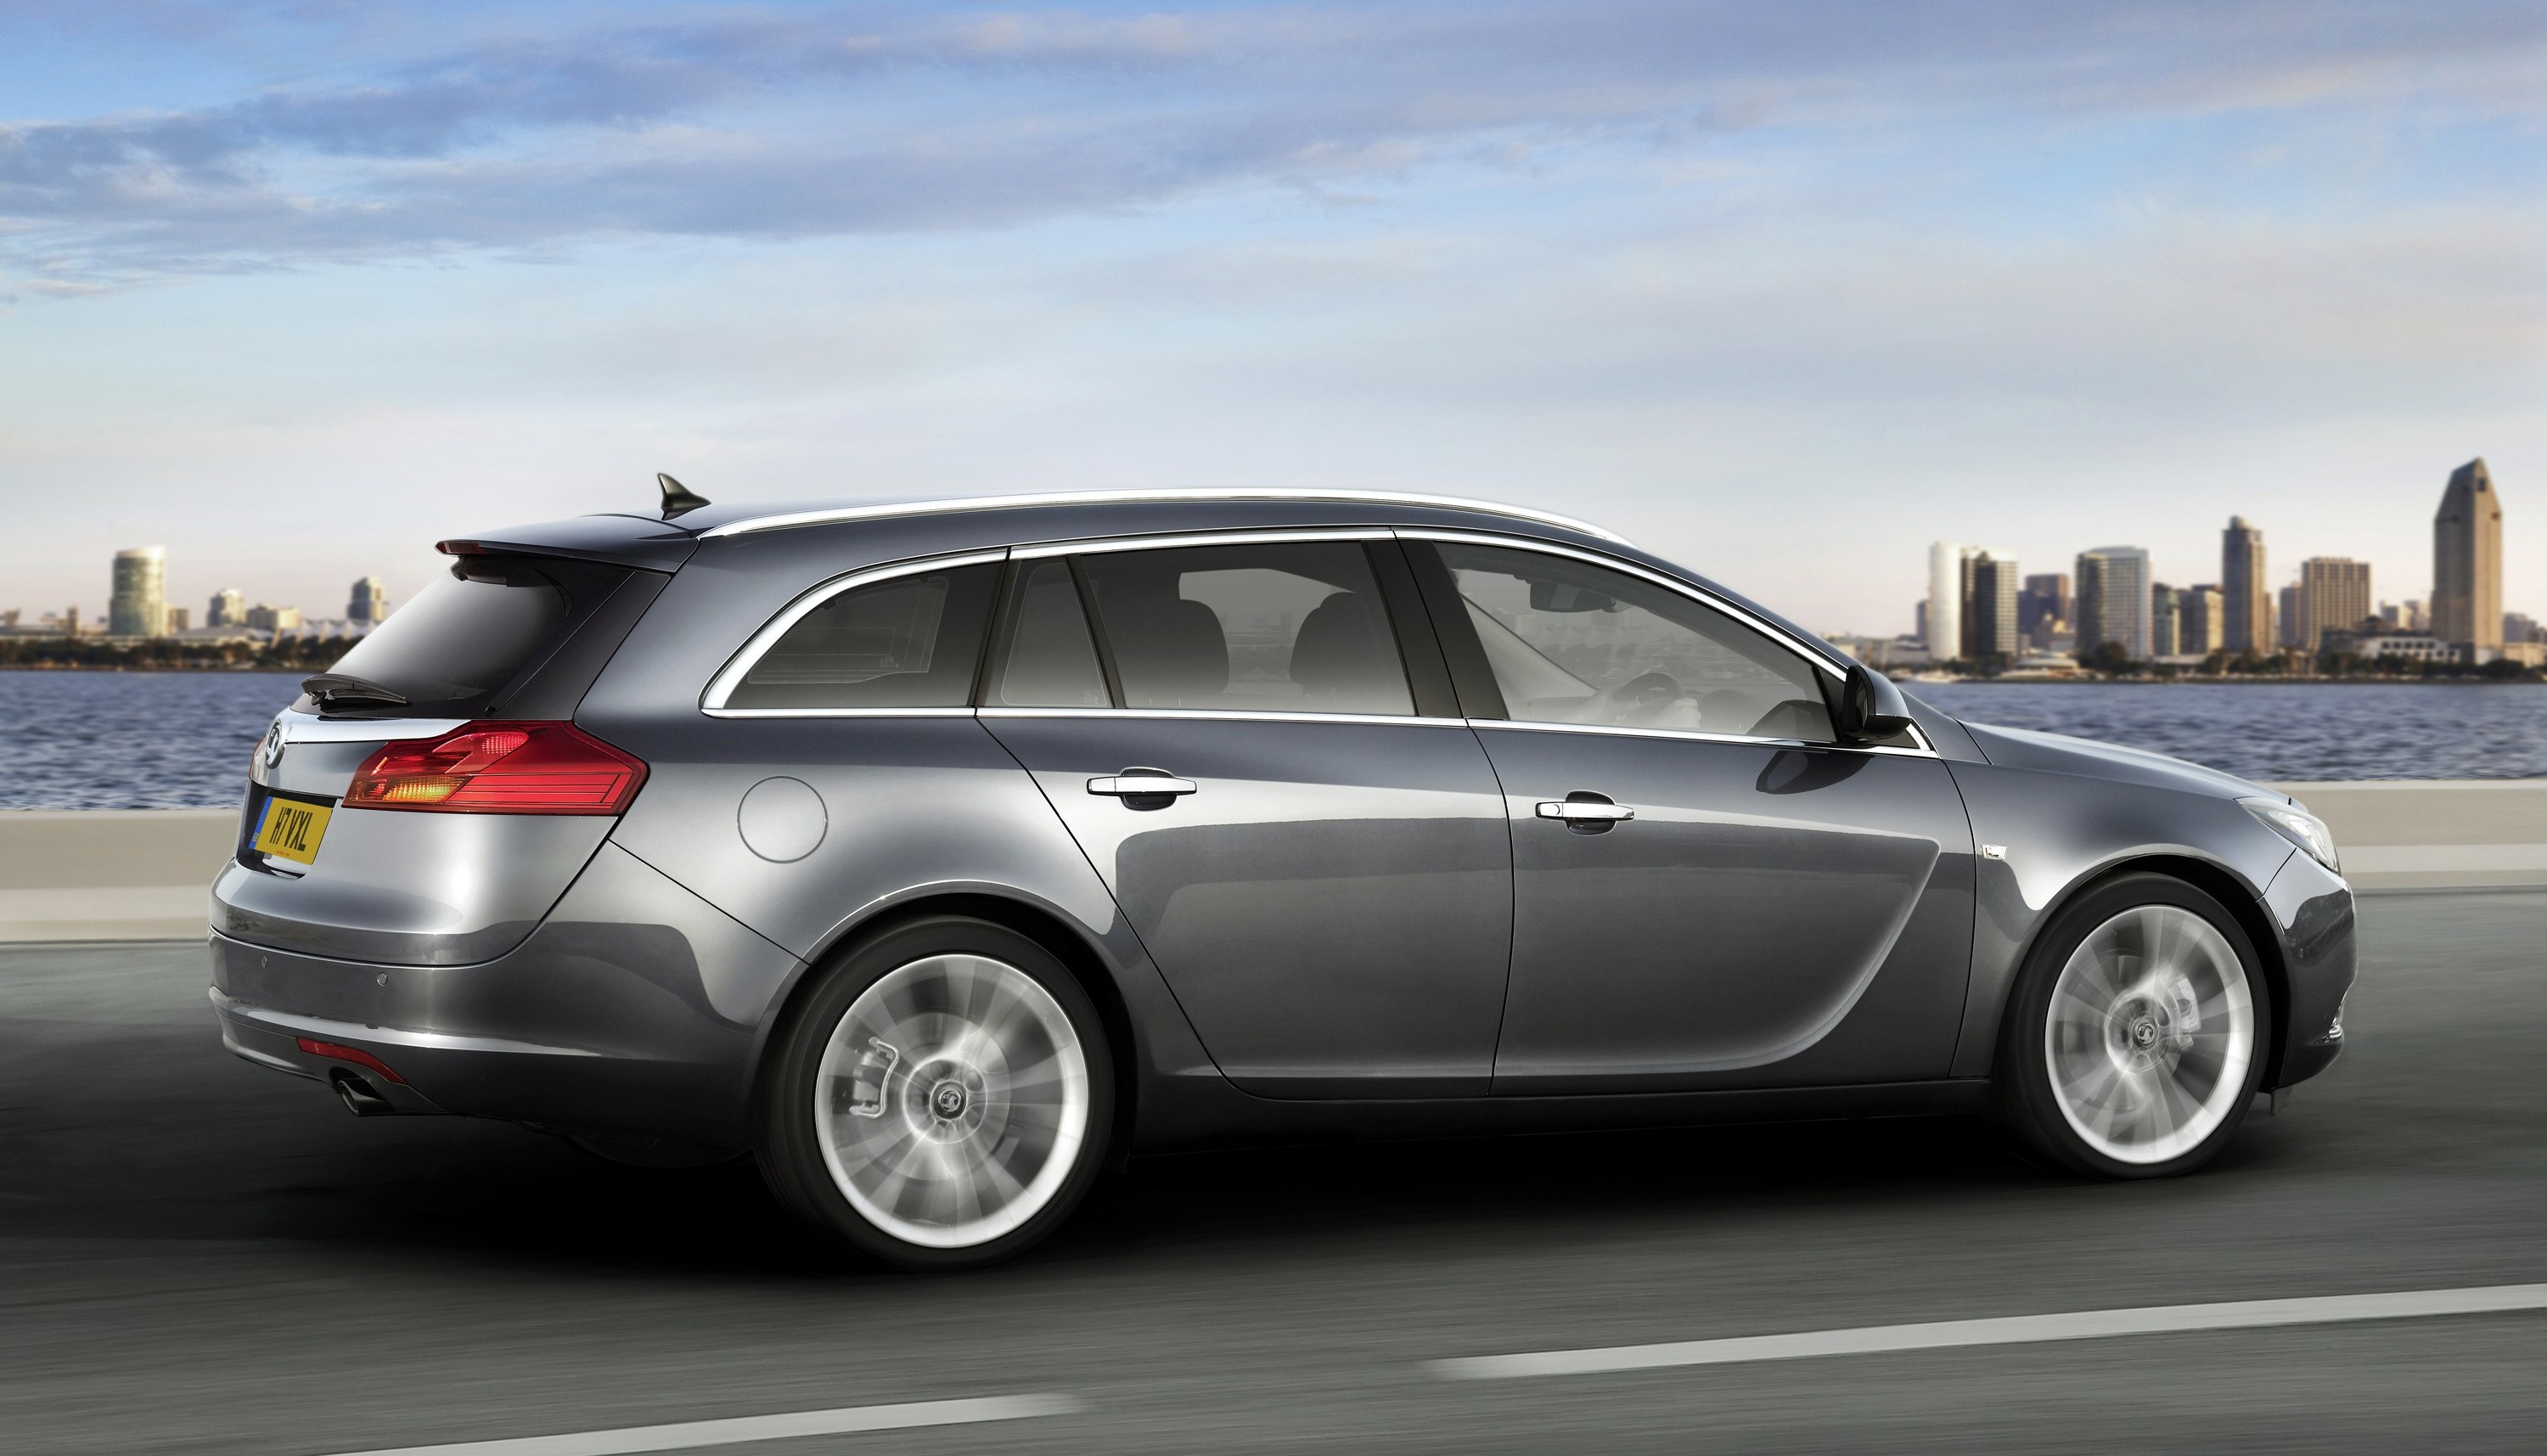 vauxhall to reveal third insignia variant at paris show. Black Bedroom Furniture Sets. Home Design Ideas